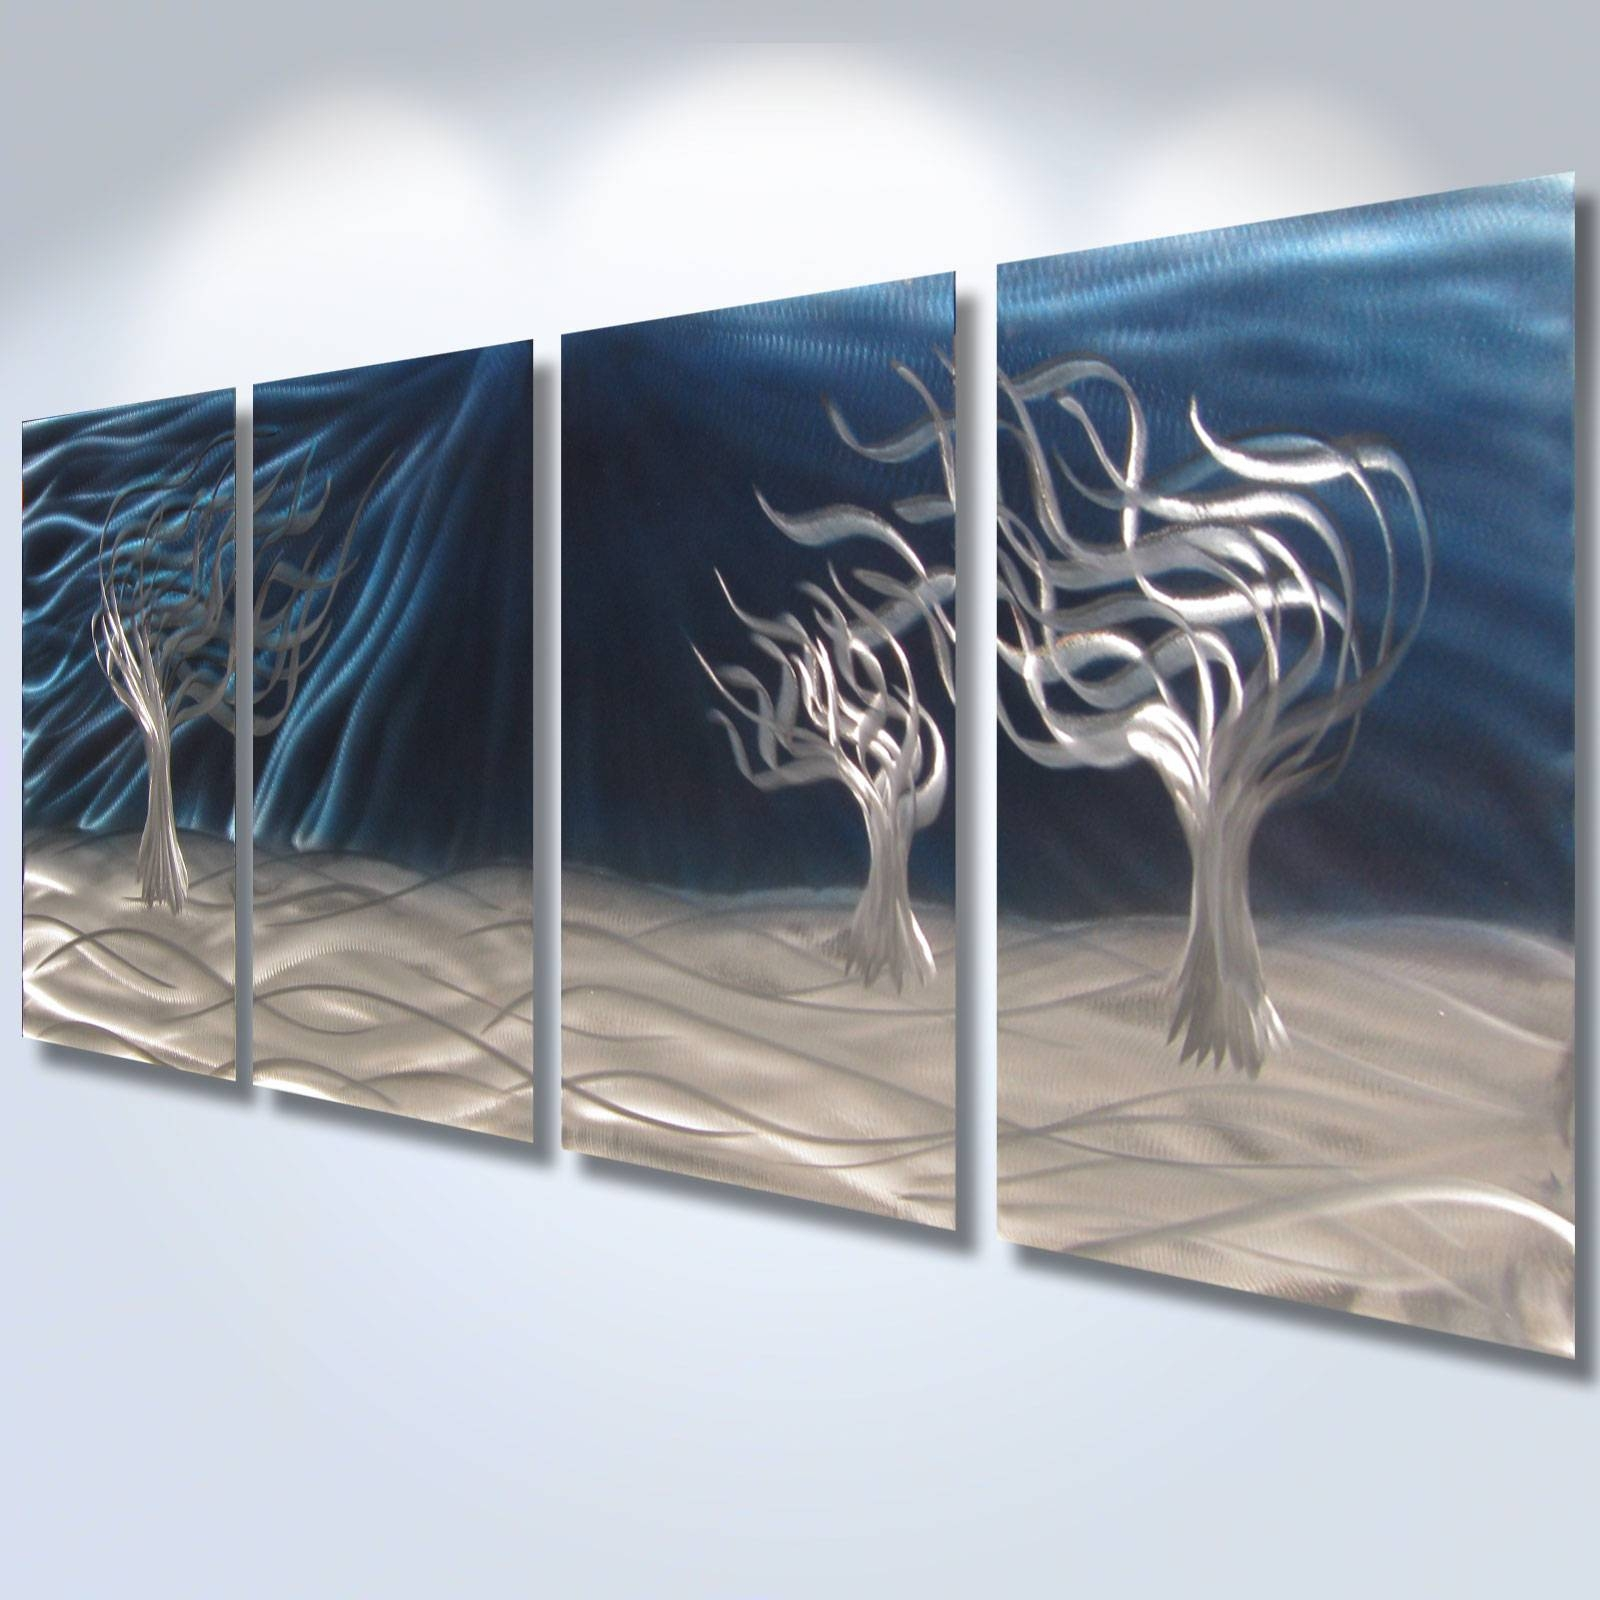 3 Trees Blue - Abstract Metal Wall Art Contemporary Modern Decor with Current Abstract Metal Wall Art